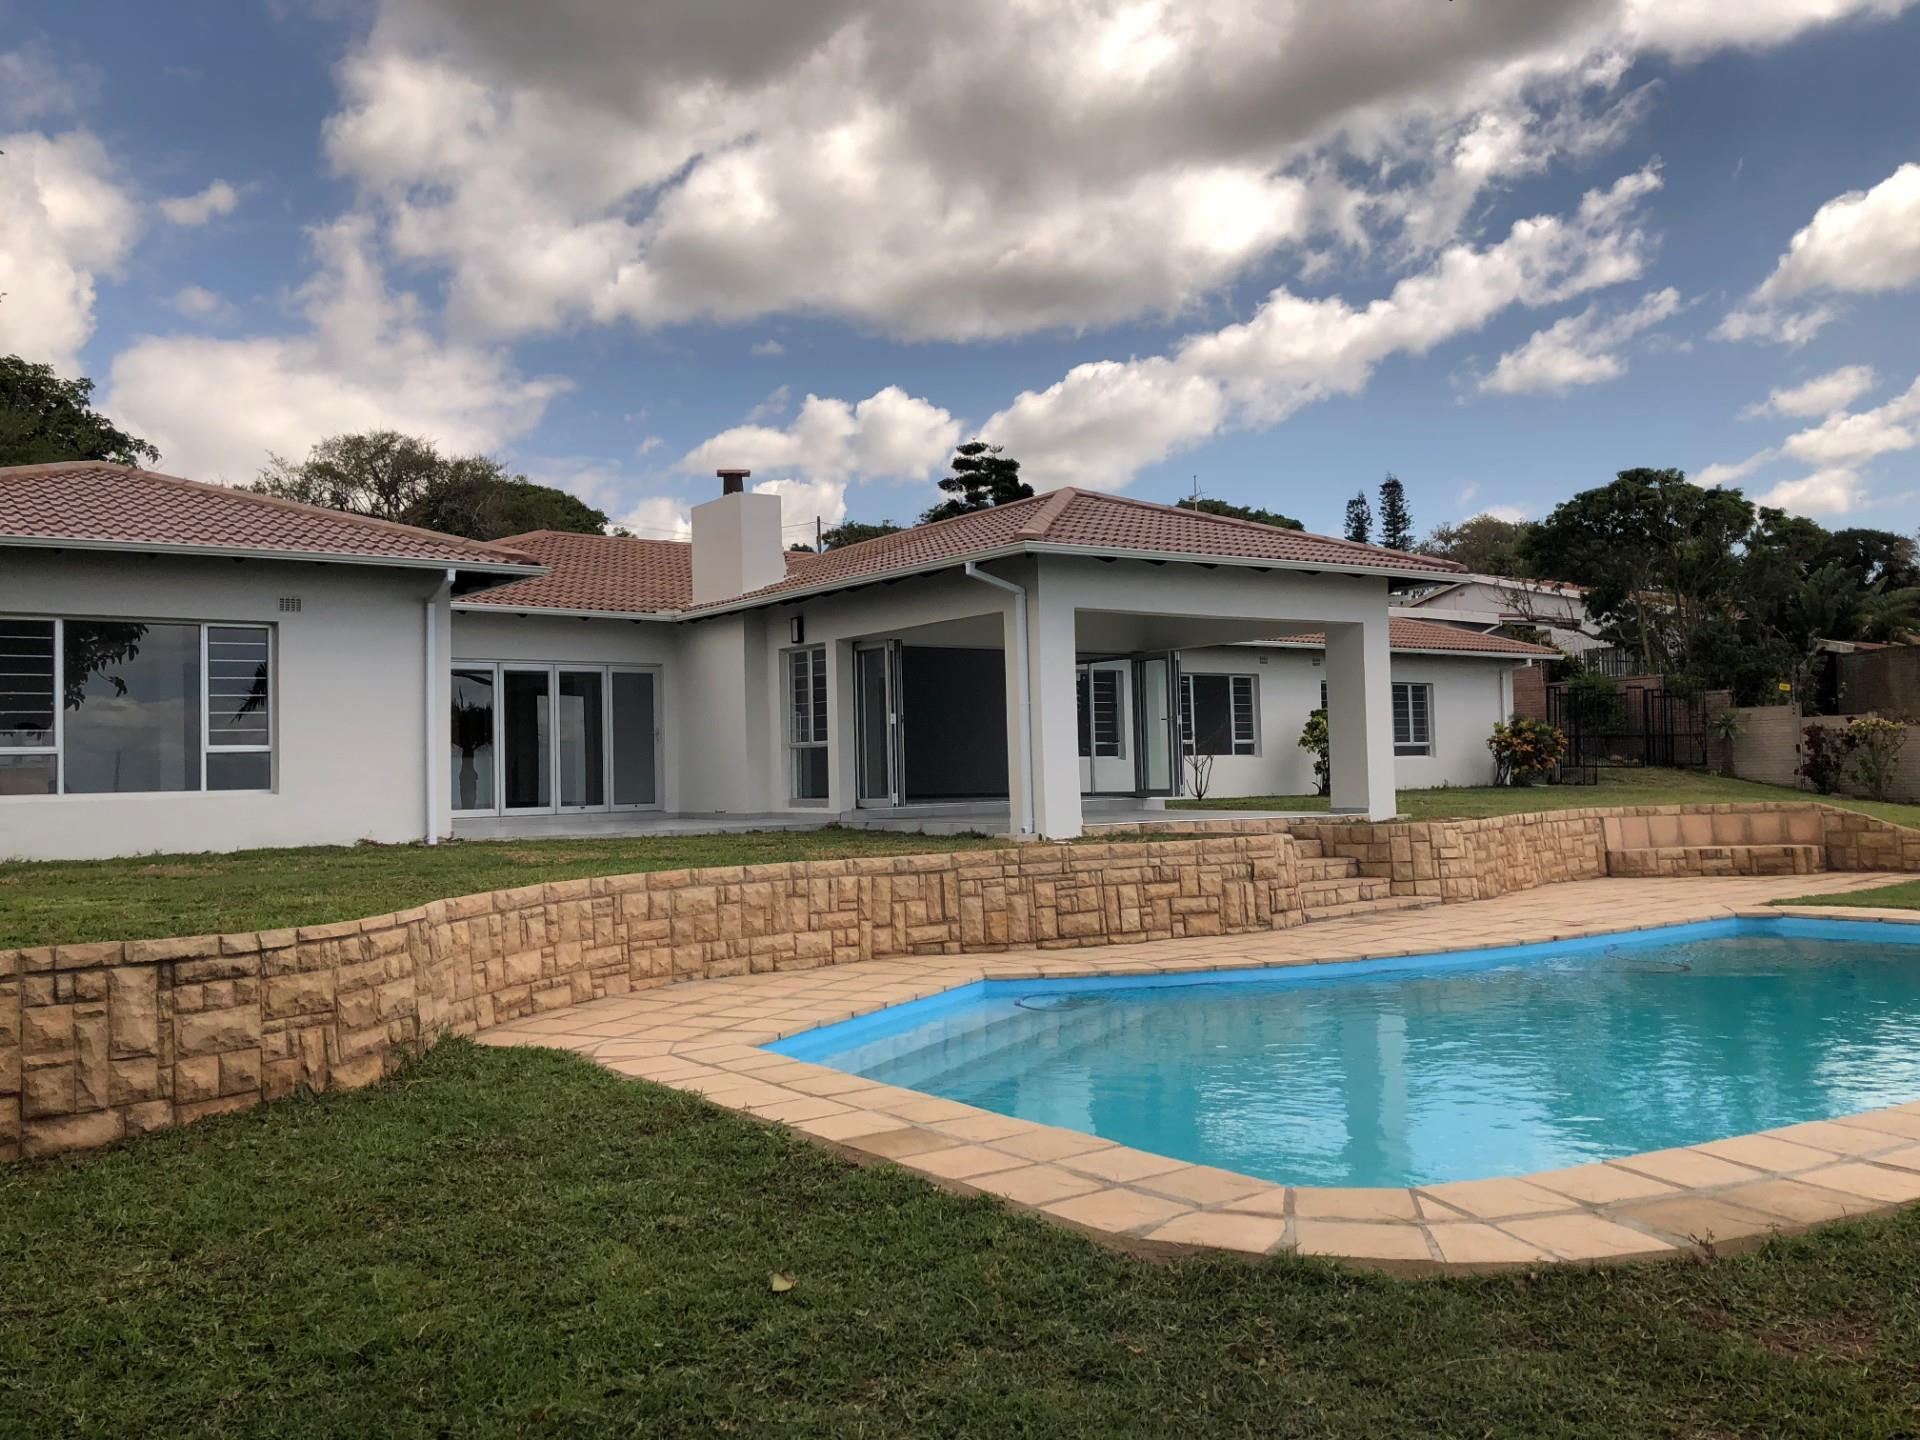 5 Bedroom House For Sale In Amanzimtoti Re Max Of Southern Africa